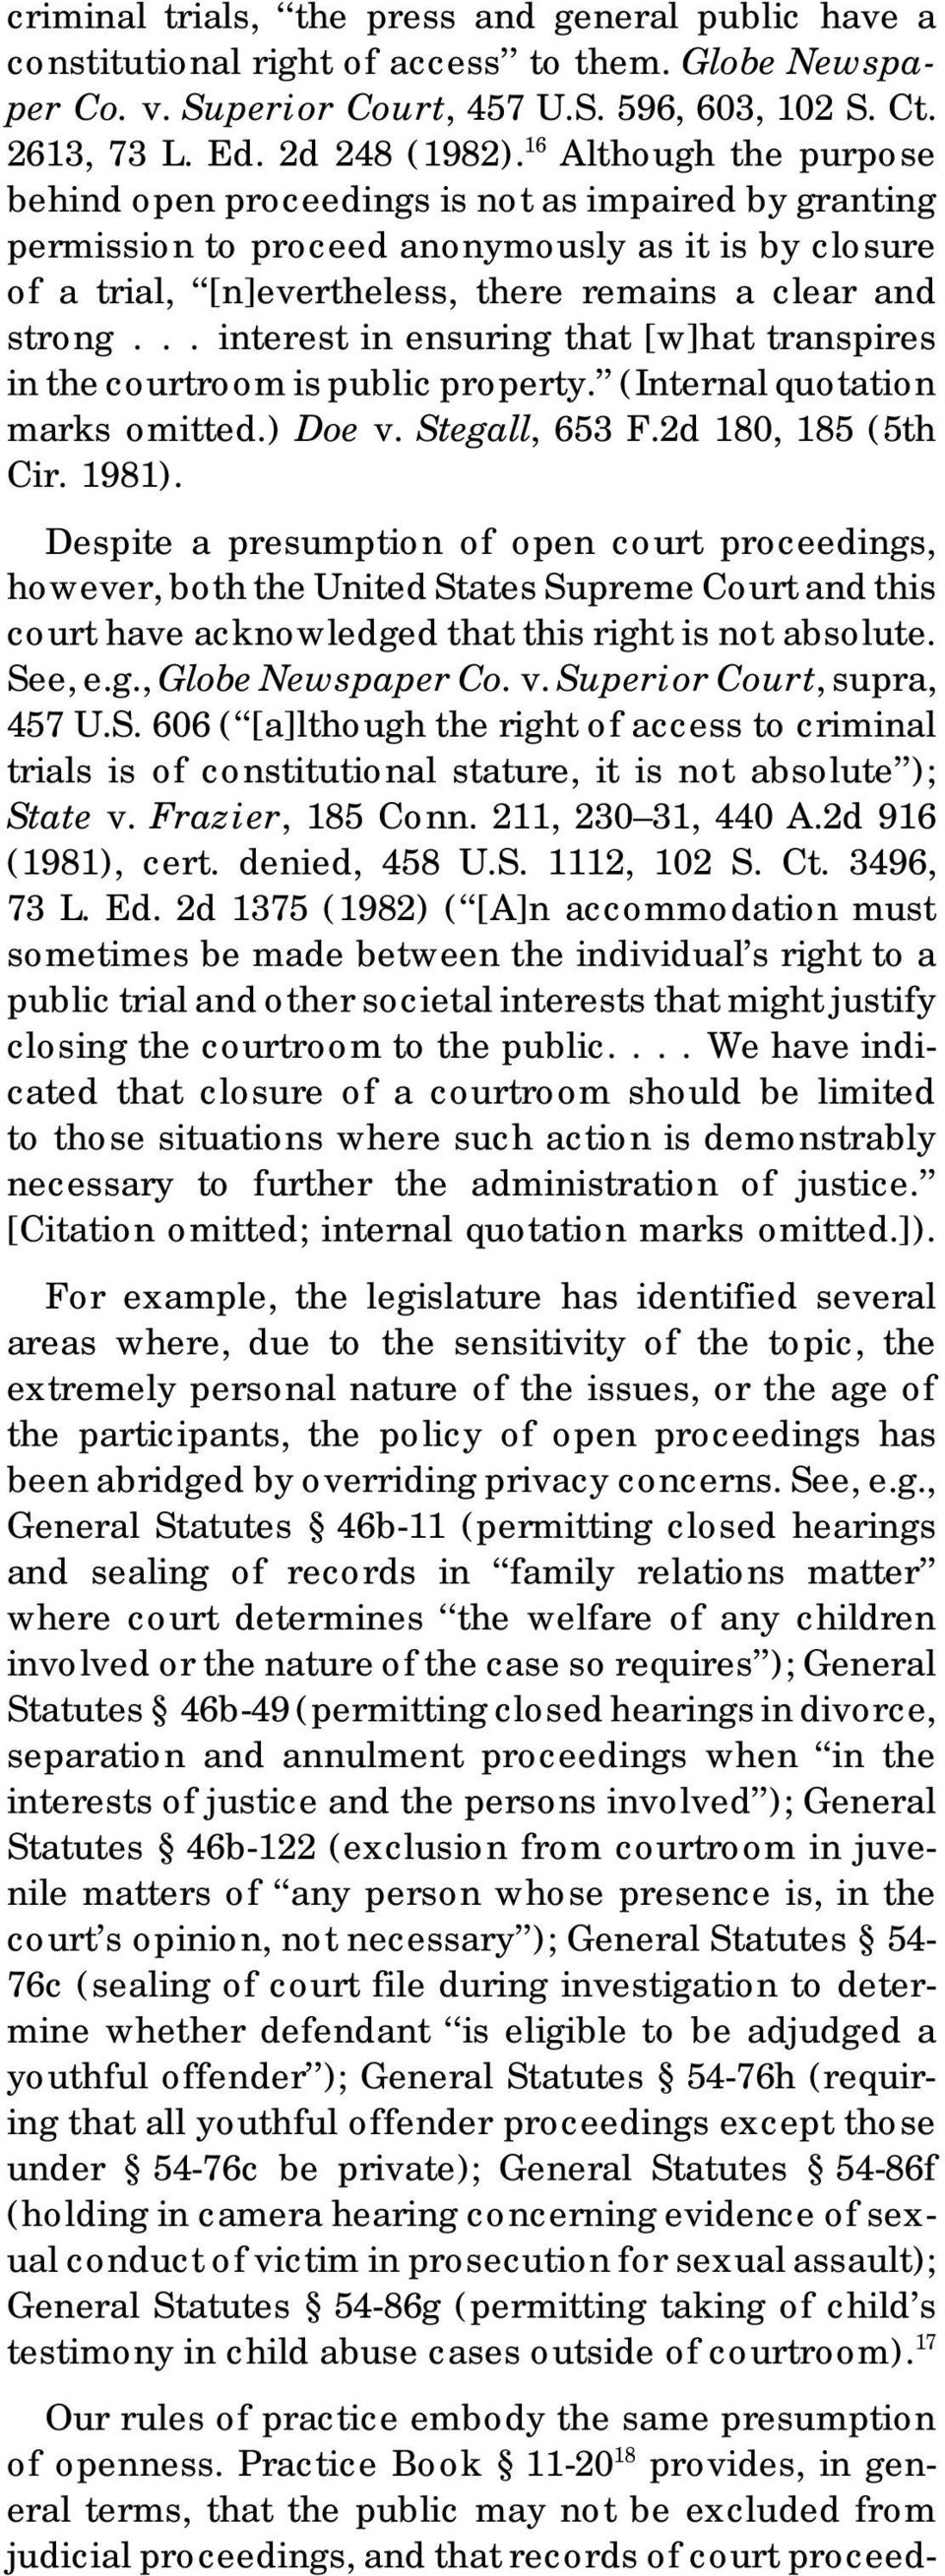 .. interest in ensuring that [w]hat transpires in the courtroom is public property. (Internal quotation marks omitted.) Doe v. Stegall, 653 F.2d 180, 185 (5th Cir. 1981).